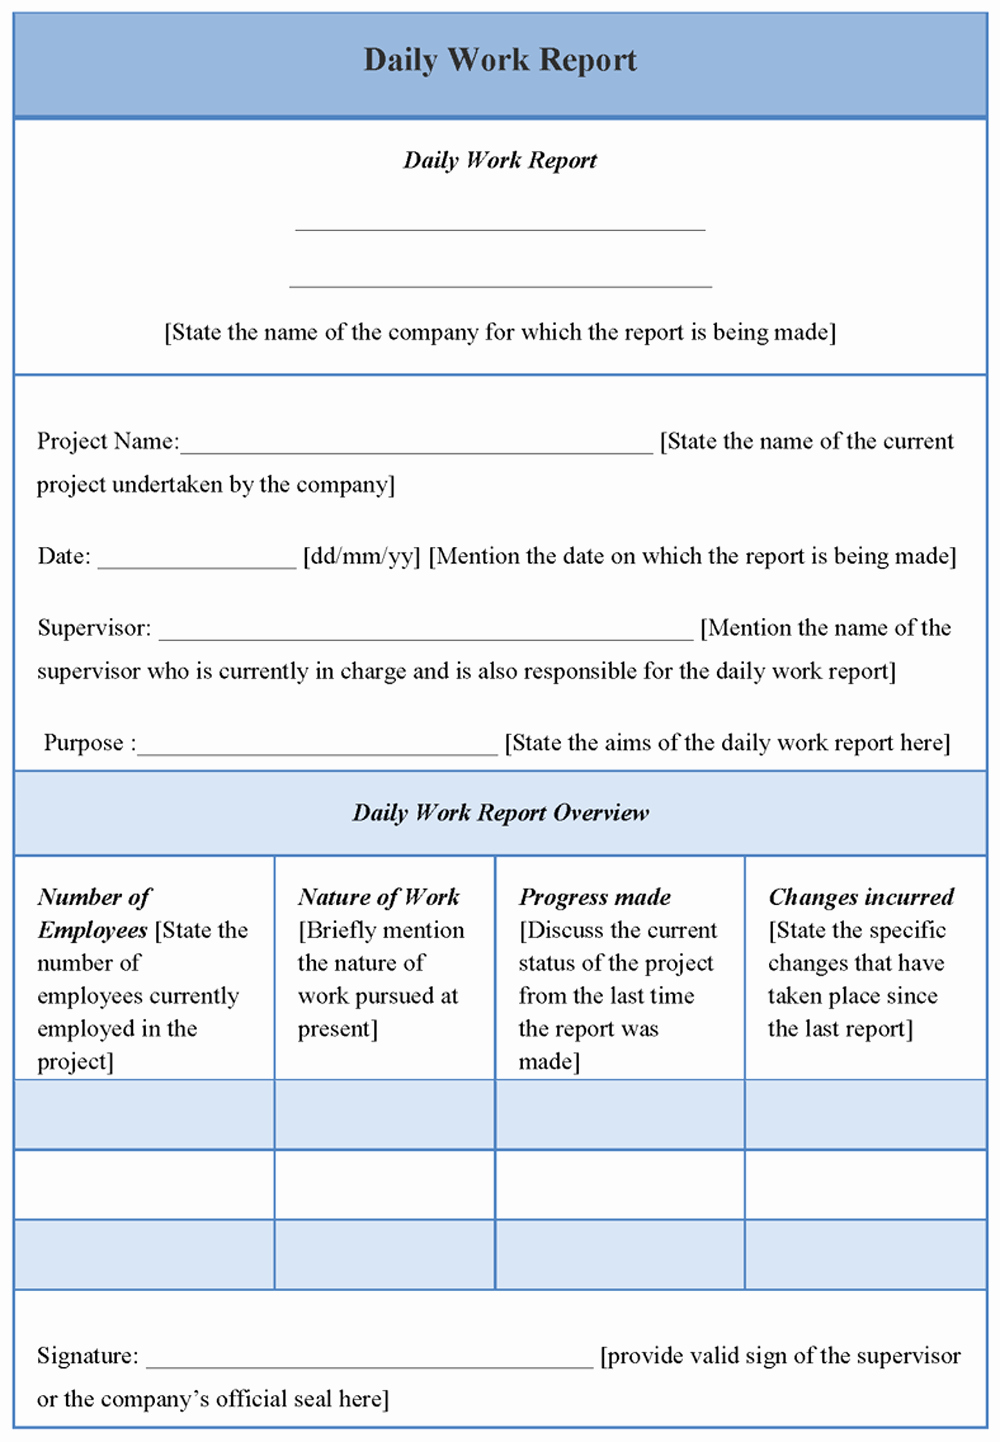 Daily Report Template Word Fresh Best S Of Daily Report Template Word Employee Daily